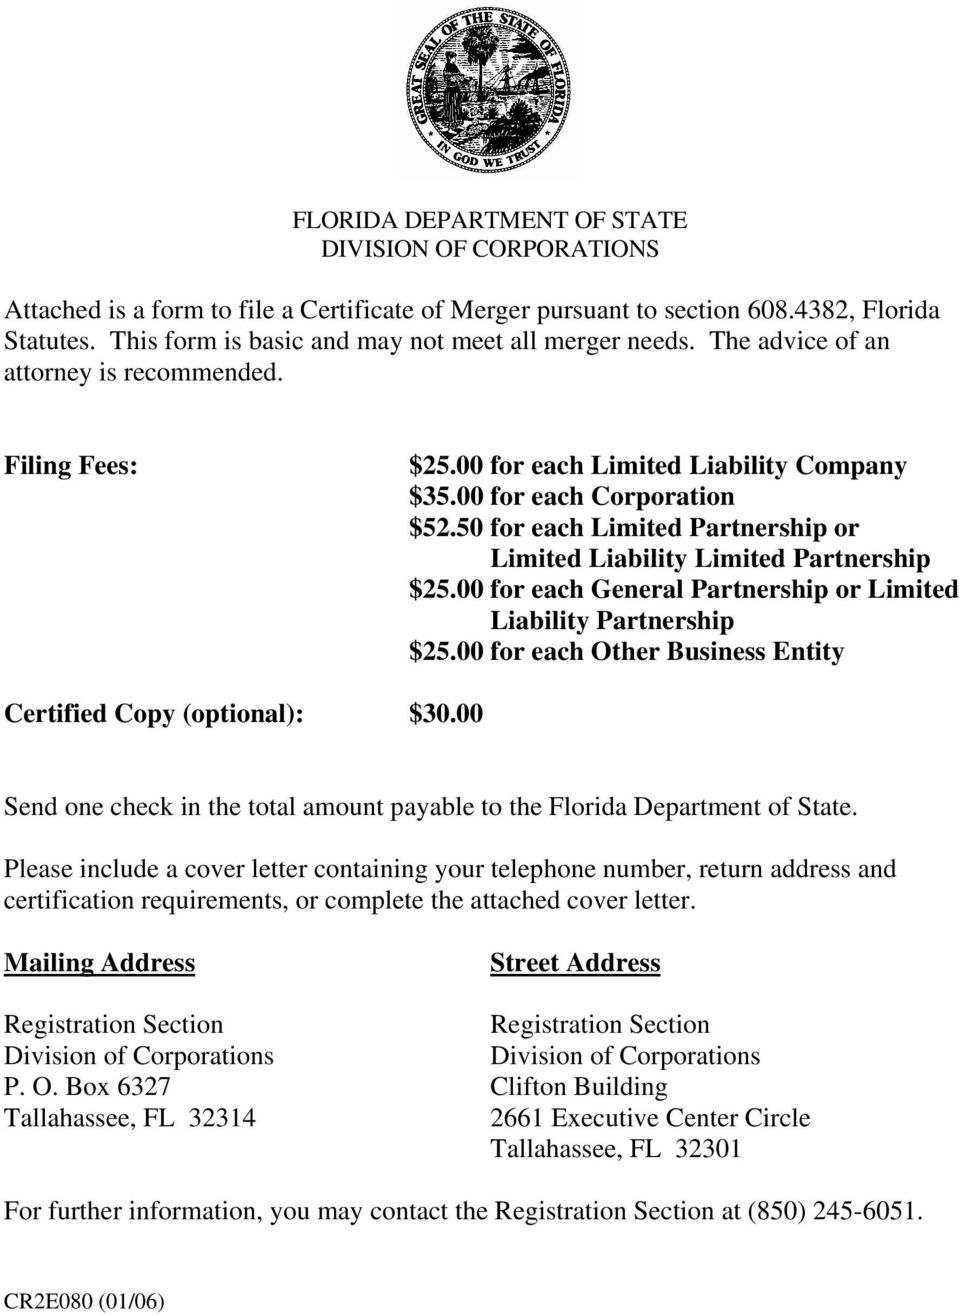 FLORIDA DEPARTMENT OF STATE DIVISION OF CORPORATIONS - PDF